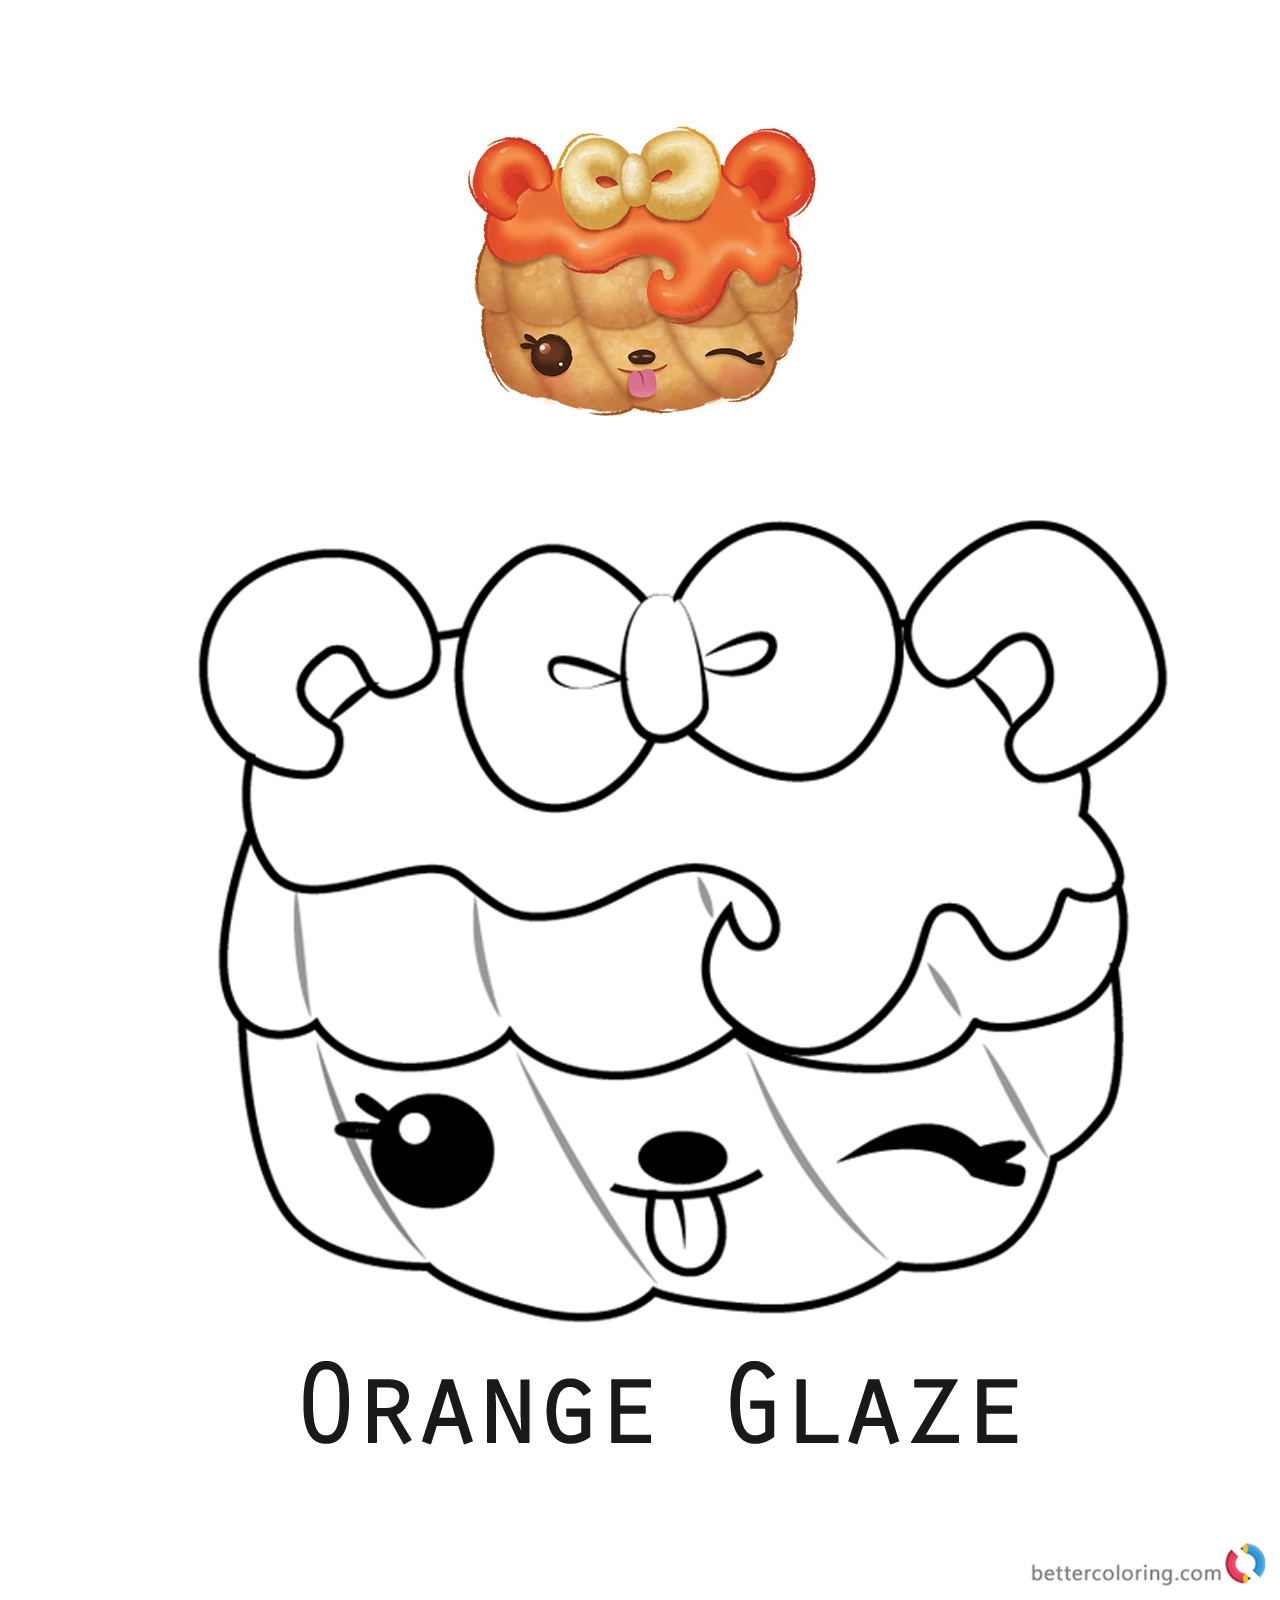 Orange Glaze from Num Noms coloring pages printable